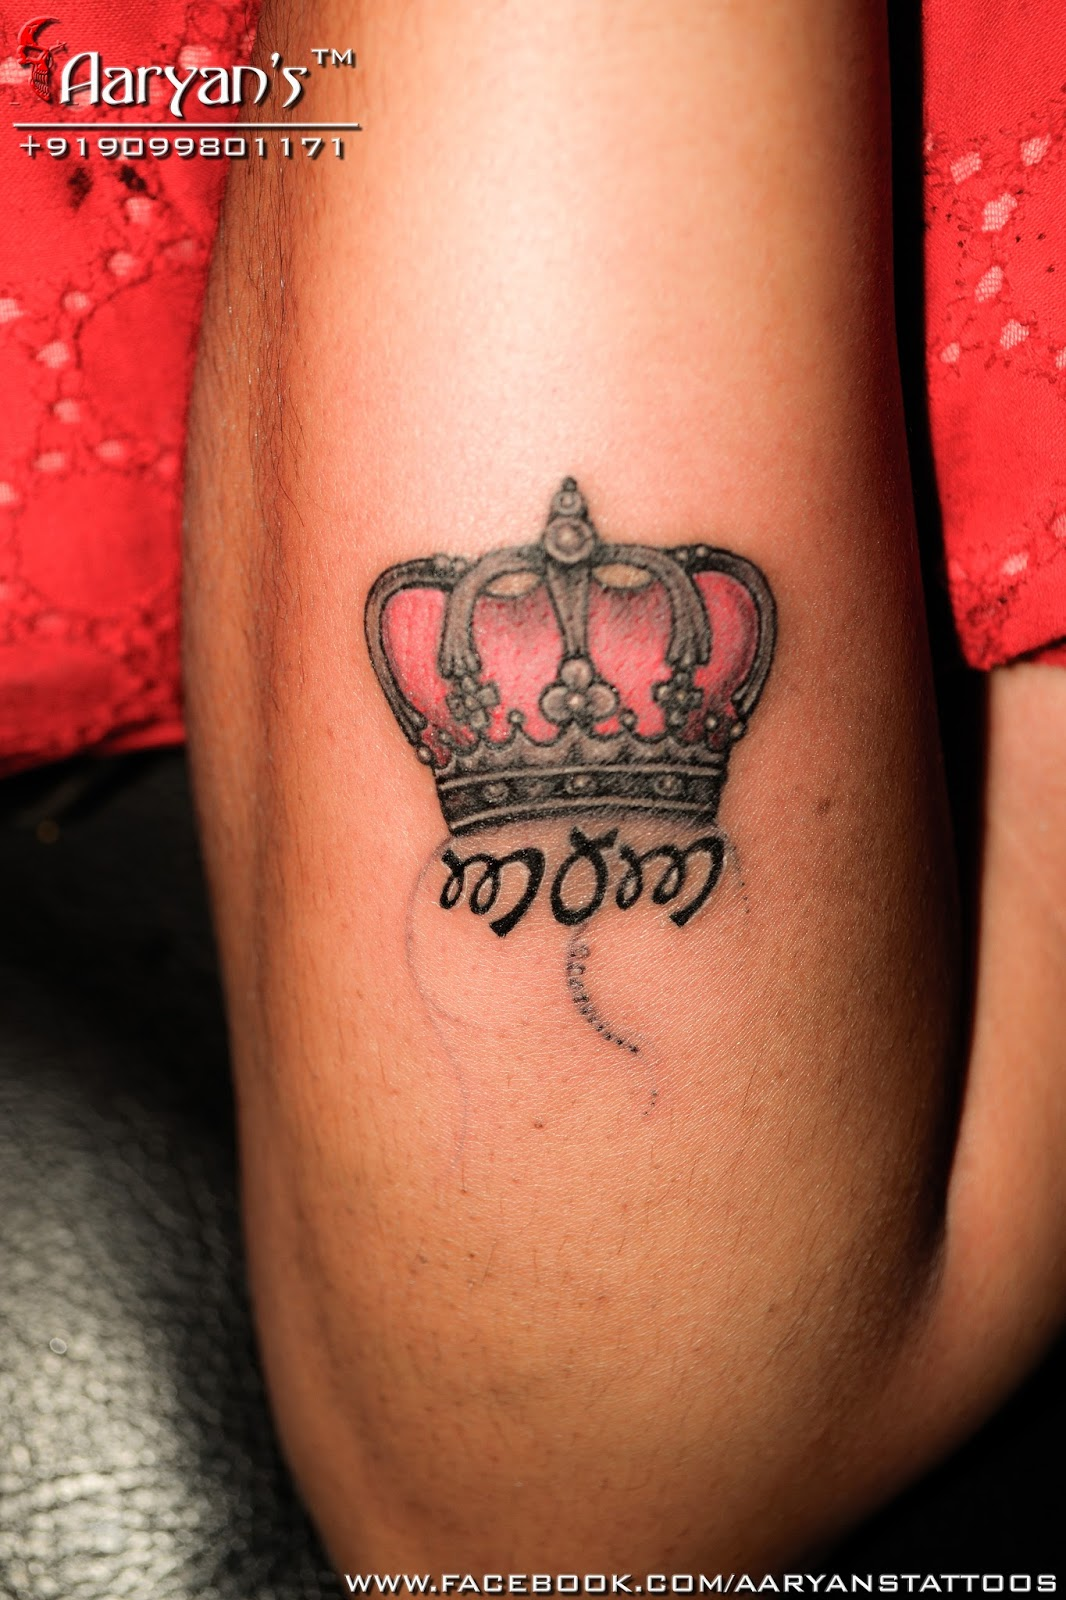 Mom Dad Tattoos: Awesome Tattoos For Mom-Dad By Aaryan